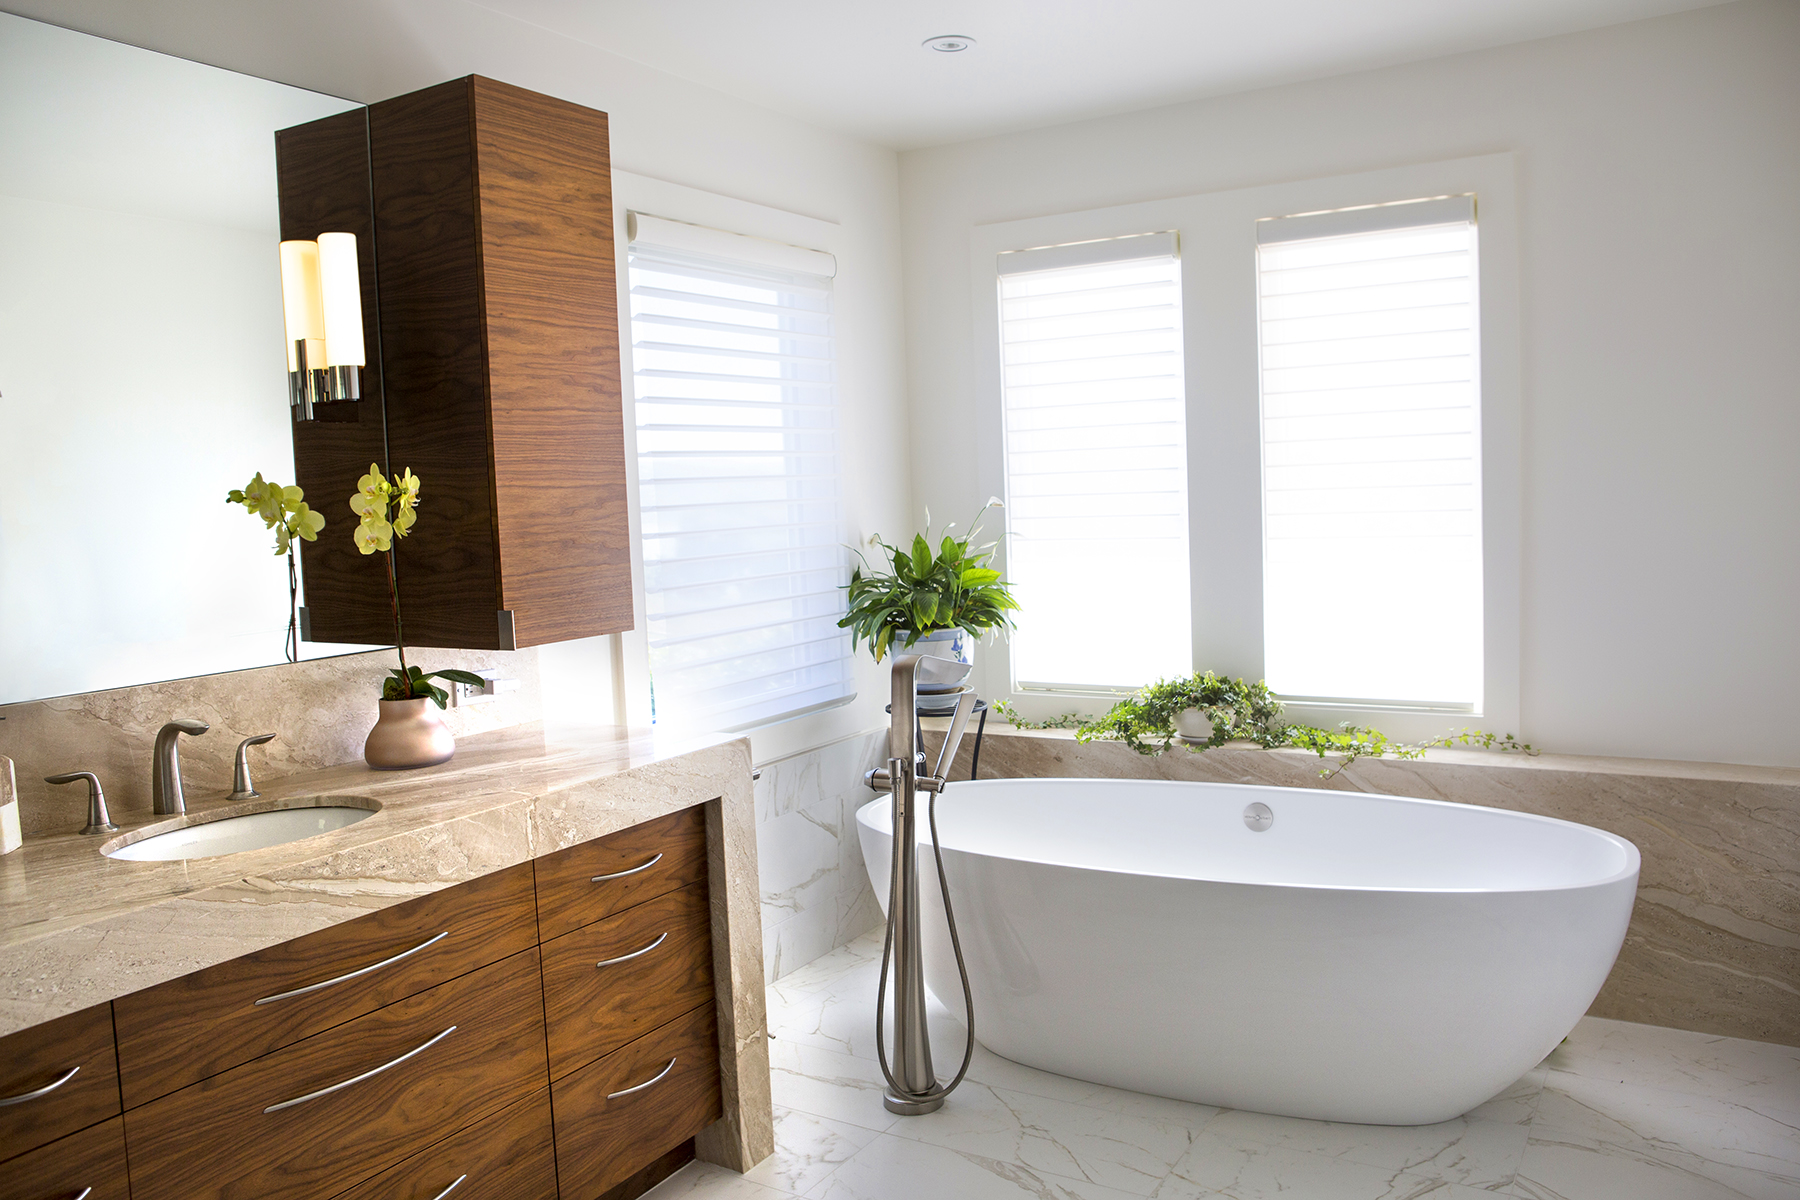 bathroom with tub 4x6.jpg